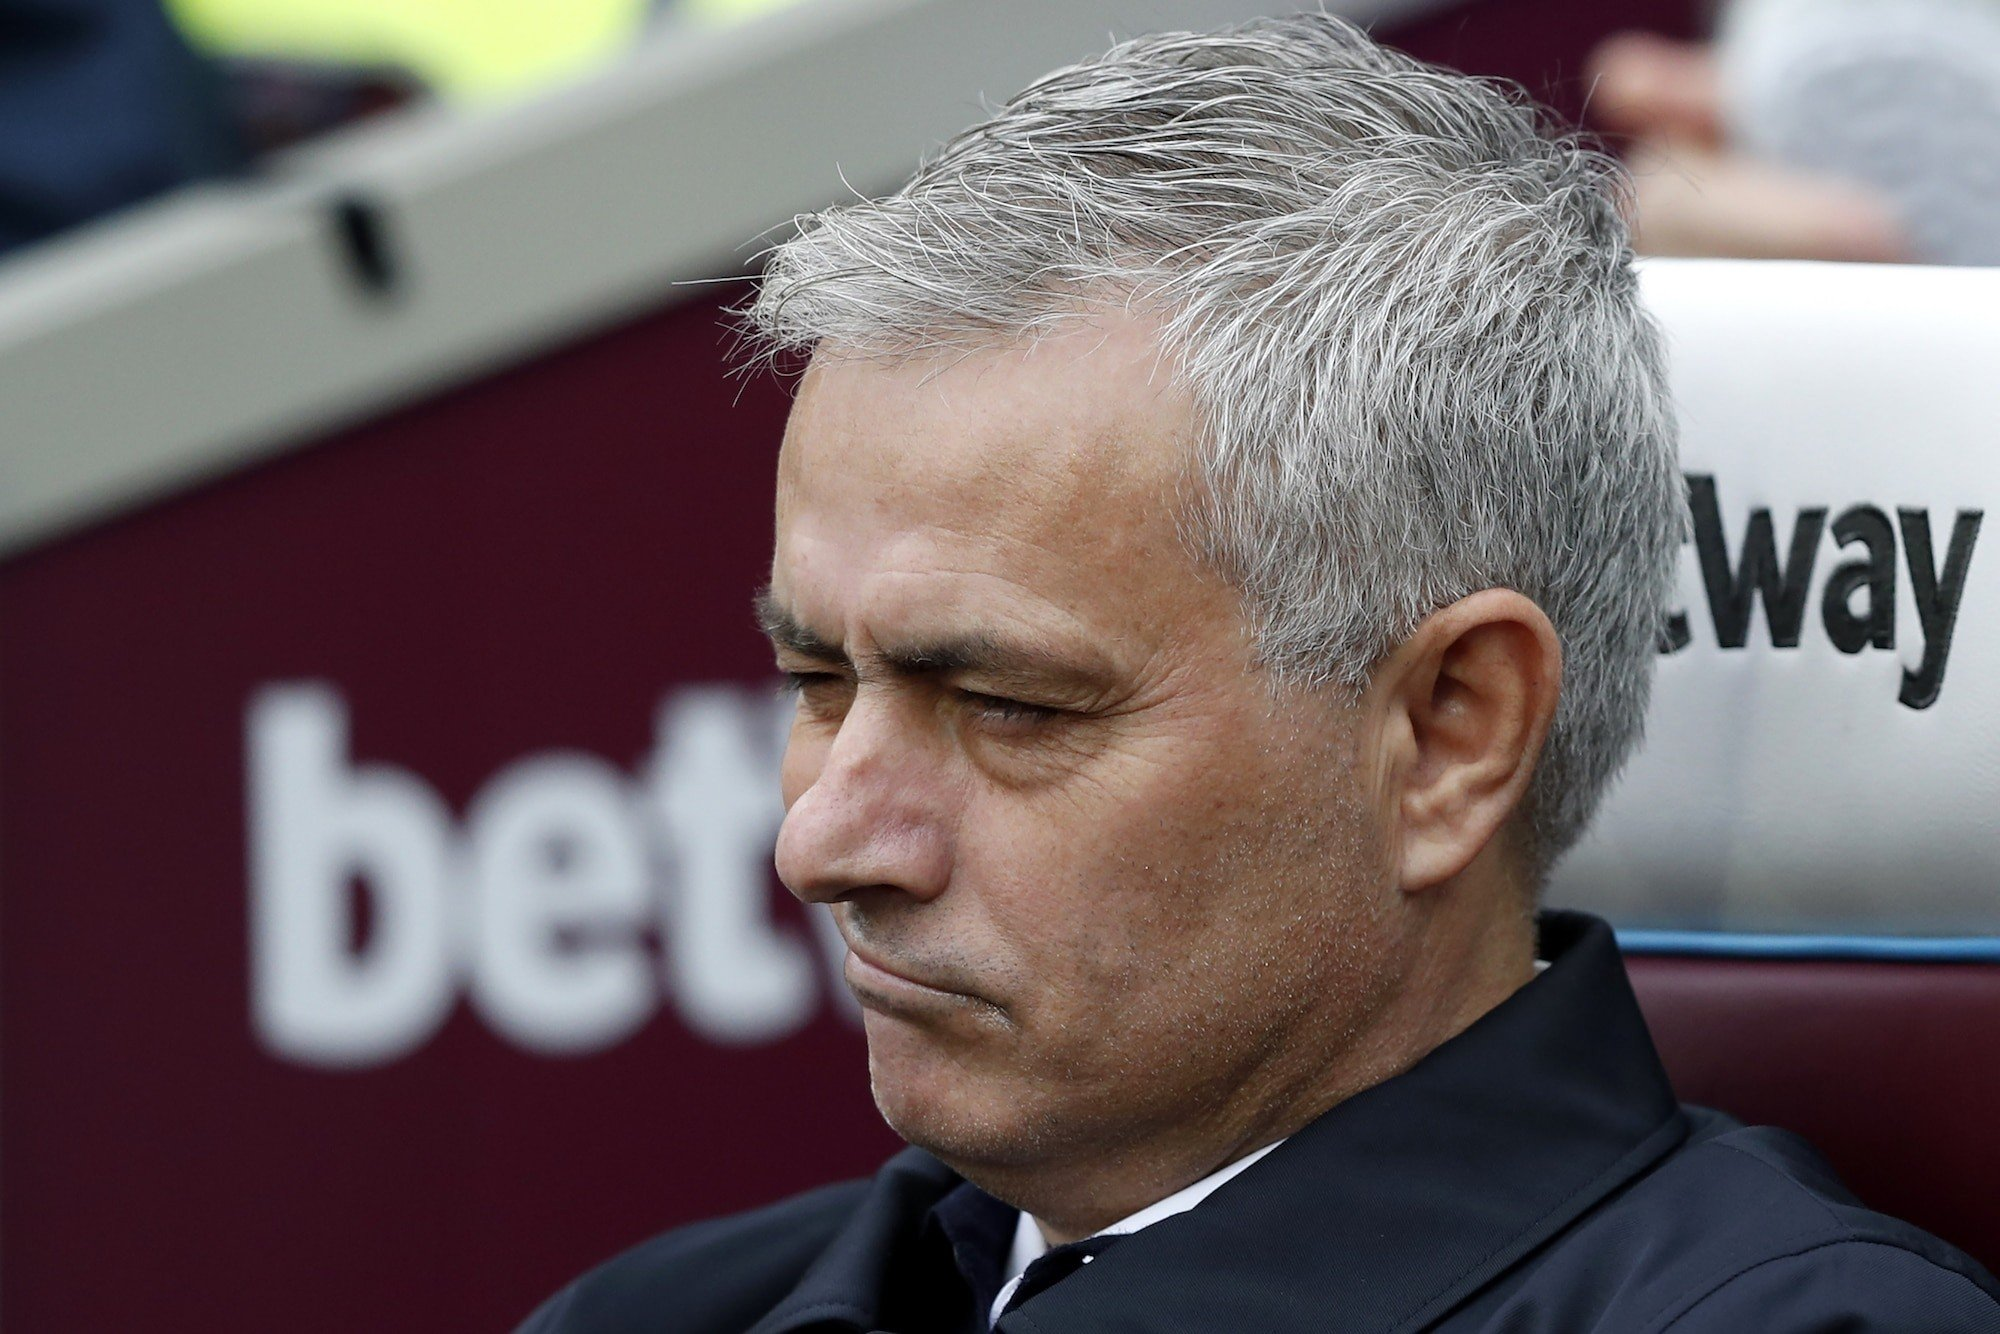 The Special Gone: Has time run out for Jose Mourinho at Tottenham?